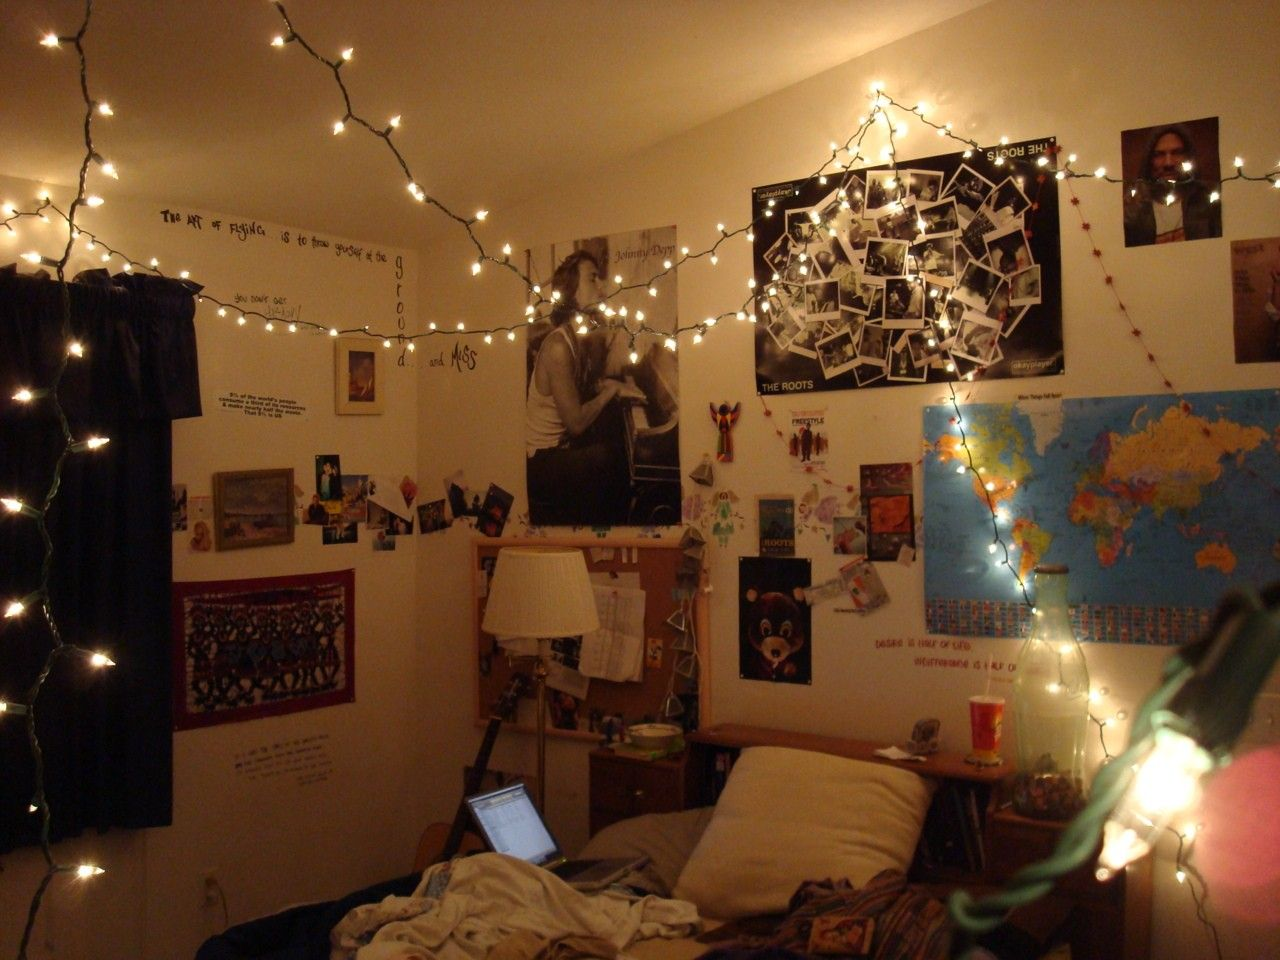 Tumblr bedrooms with lights - Diy Tumblr Room Decor Pinterest Google Search